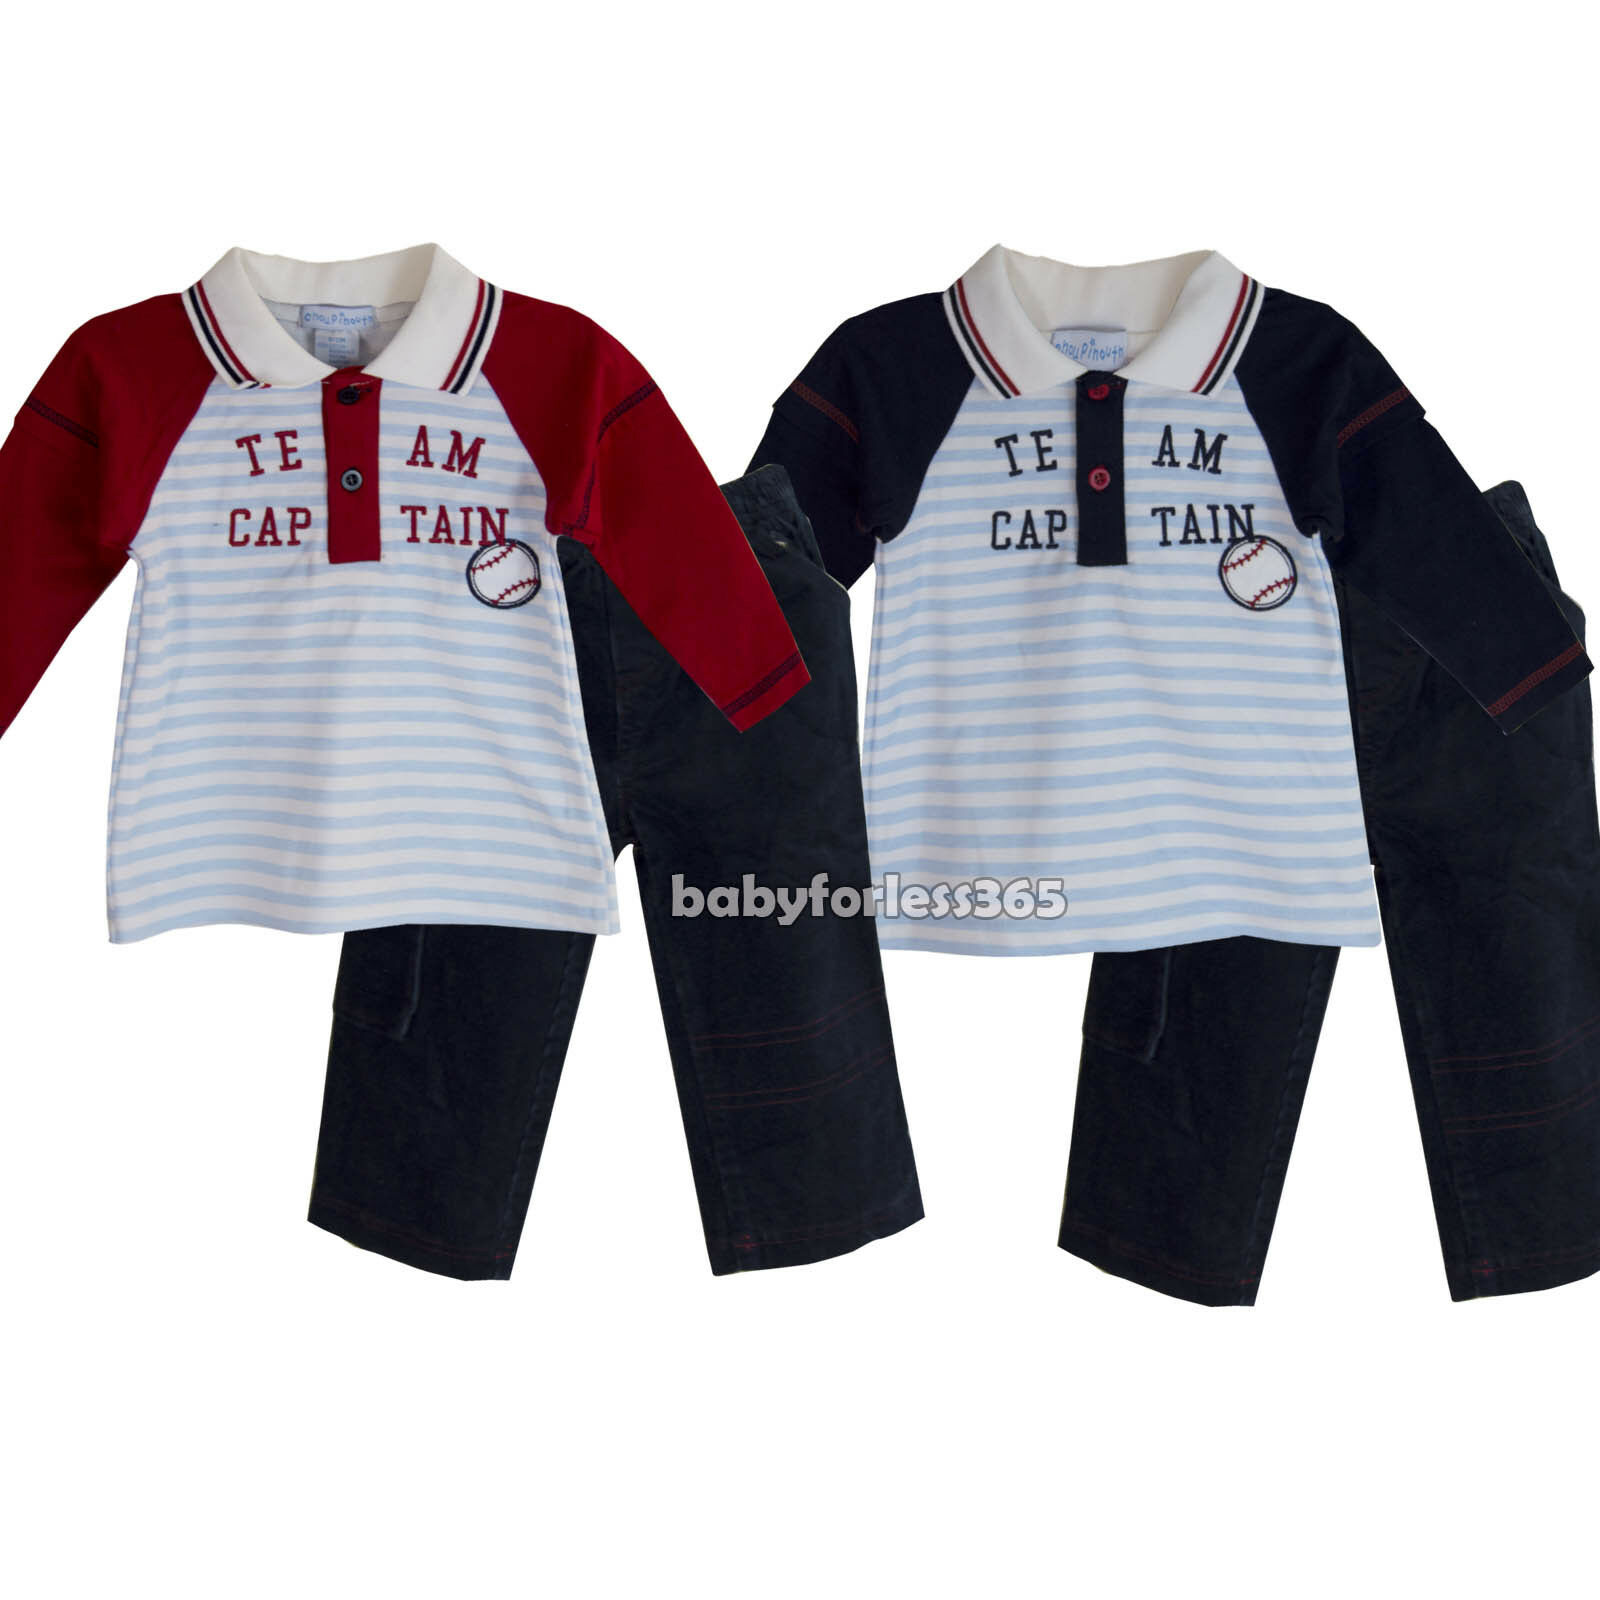 7cfe803812aa New Baby Boys 2 Piece set Shirt Top   Pants Clothes outfit Size 3 6 ...